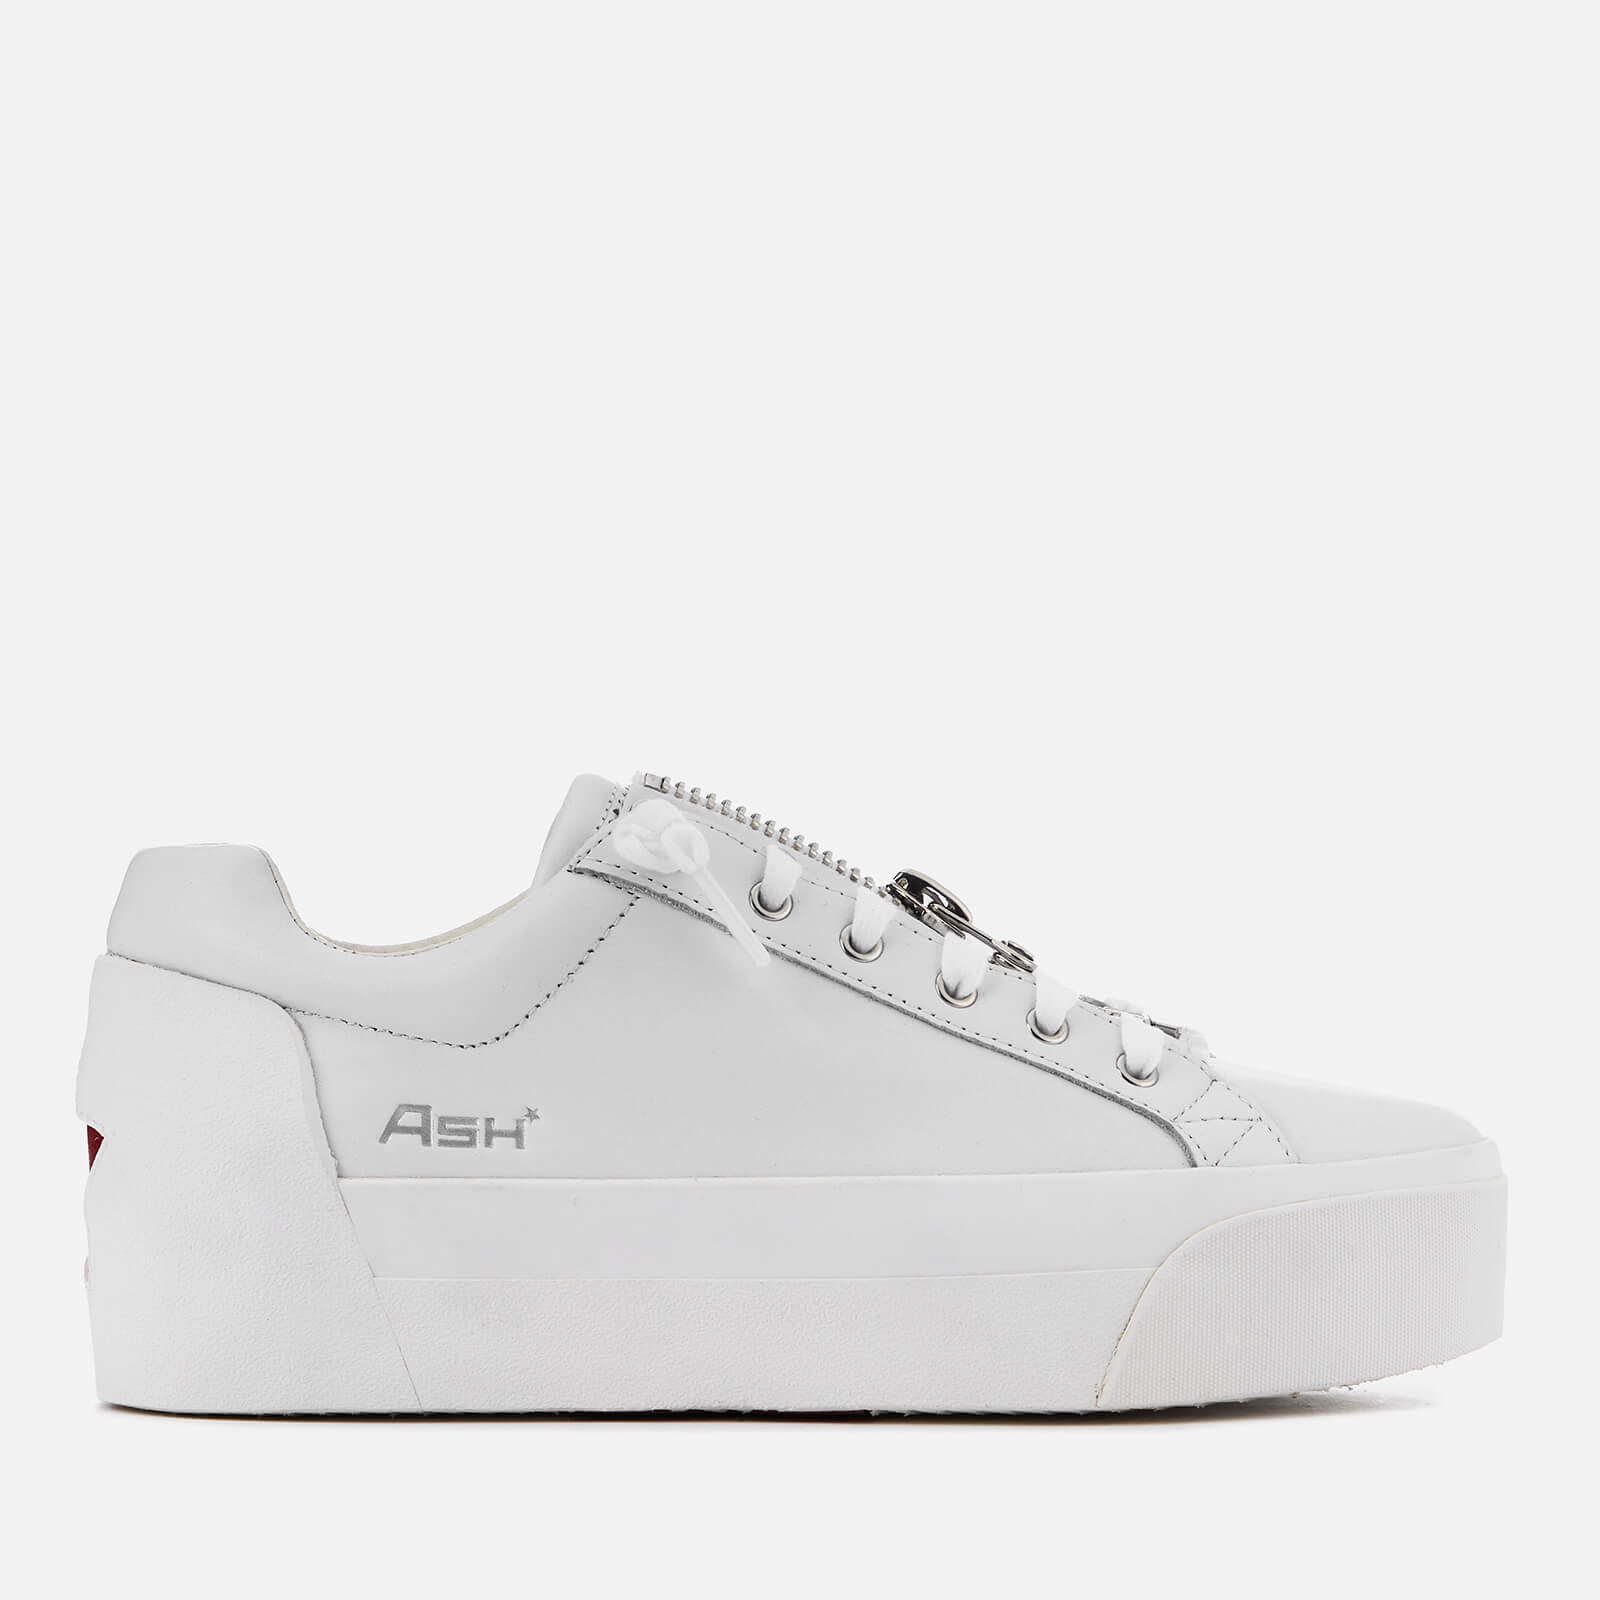 d91e0fcf464 Ash Women s Buzz Leather Flatform Trainers - White Red - Free UK Delivery  over £50